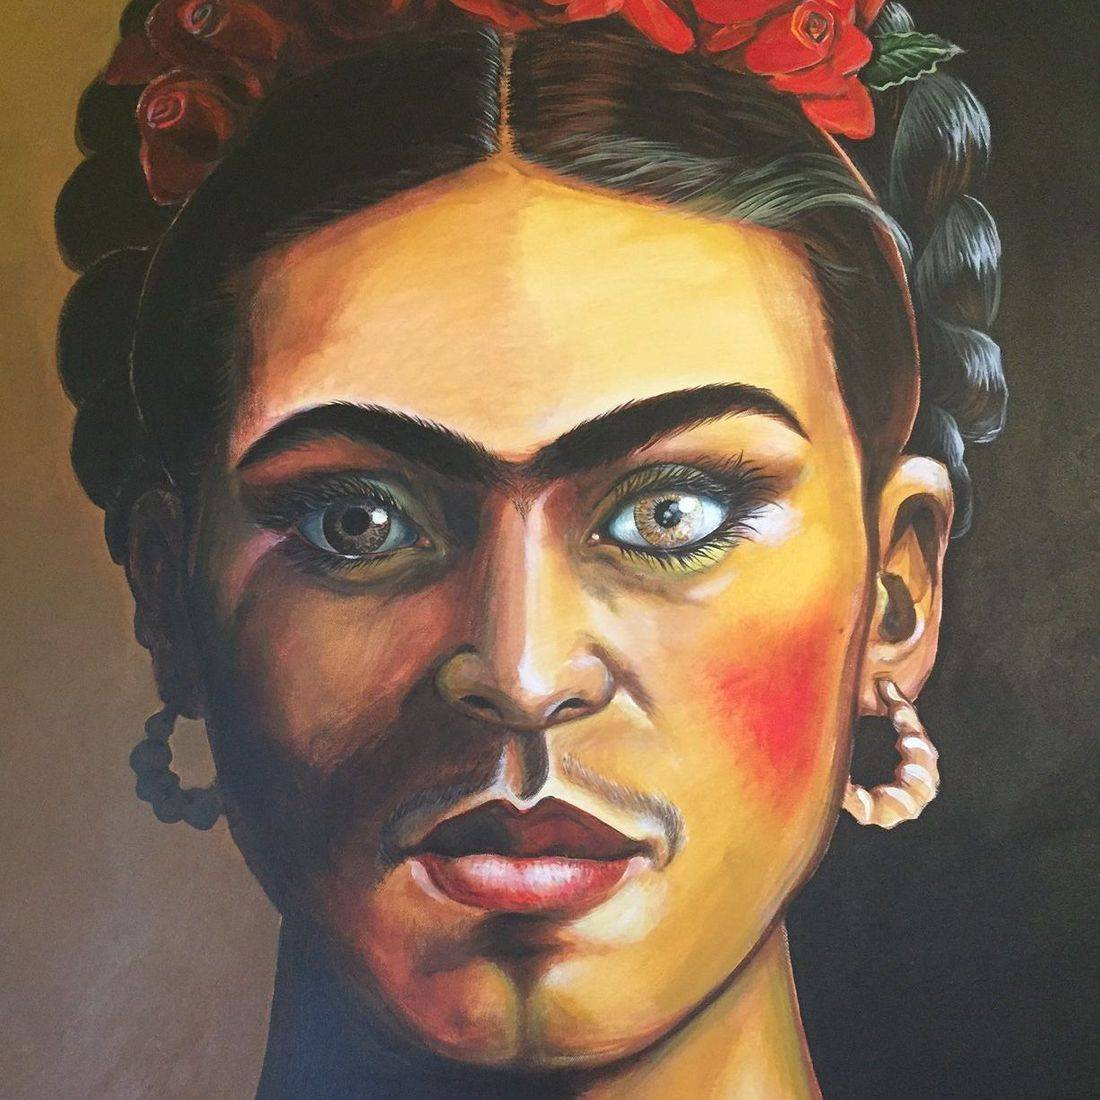 frida, san antonio, eyebrows, shrimp earrings